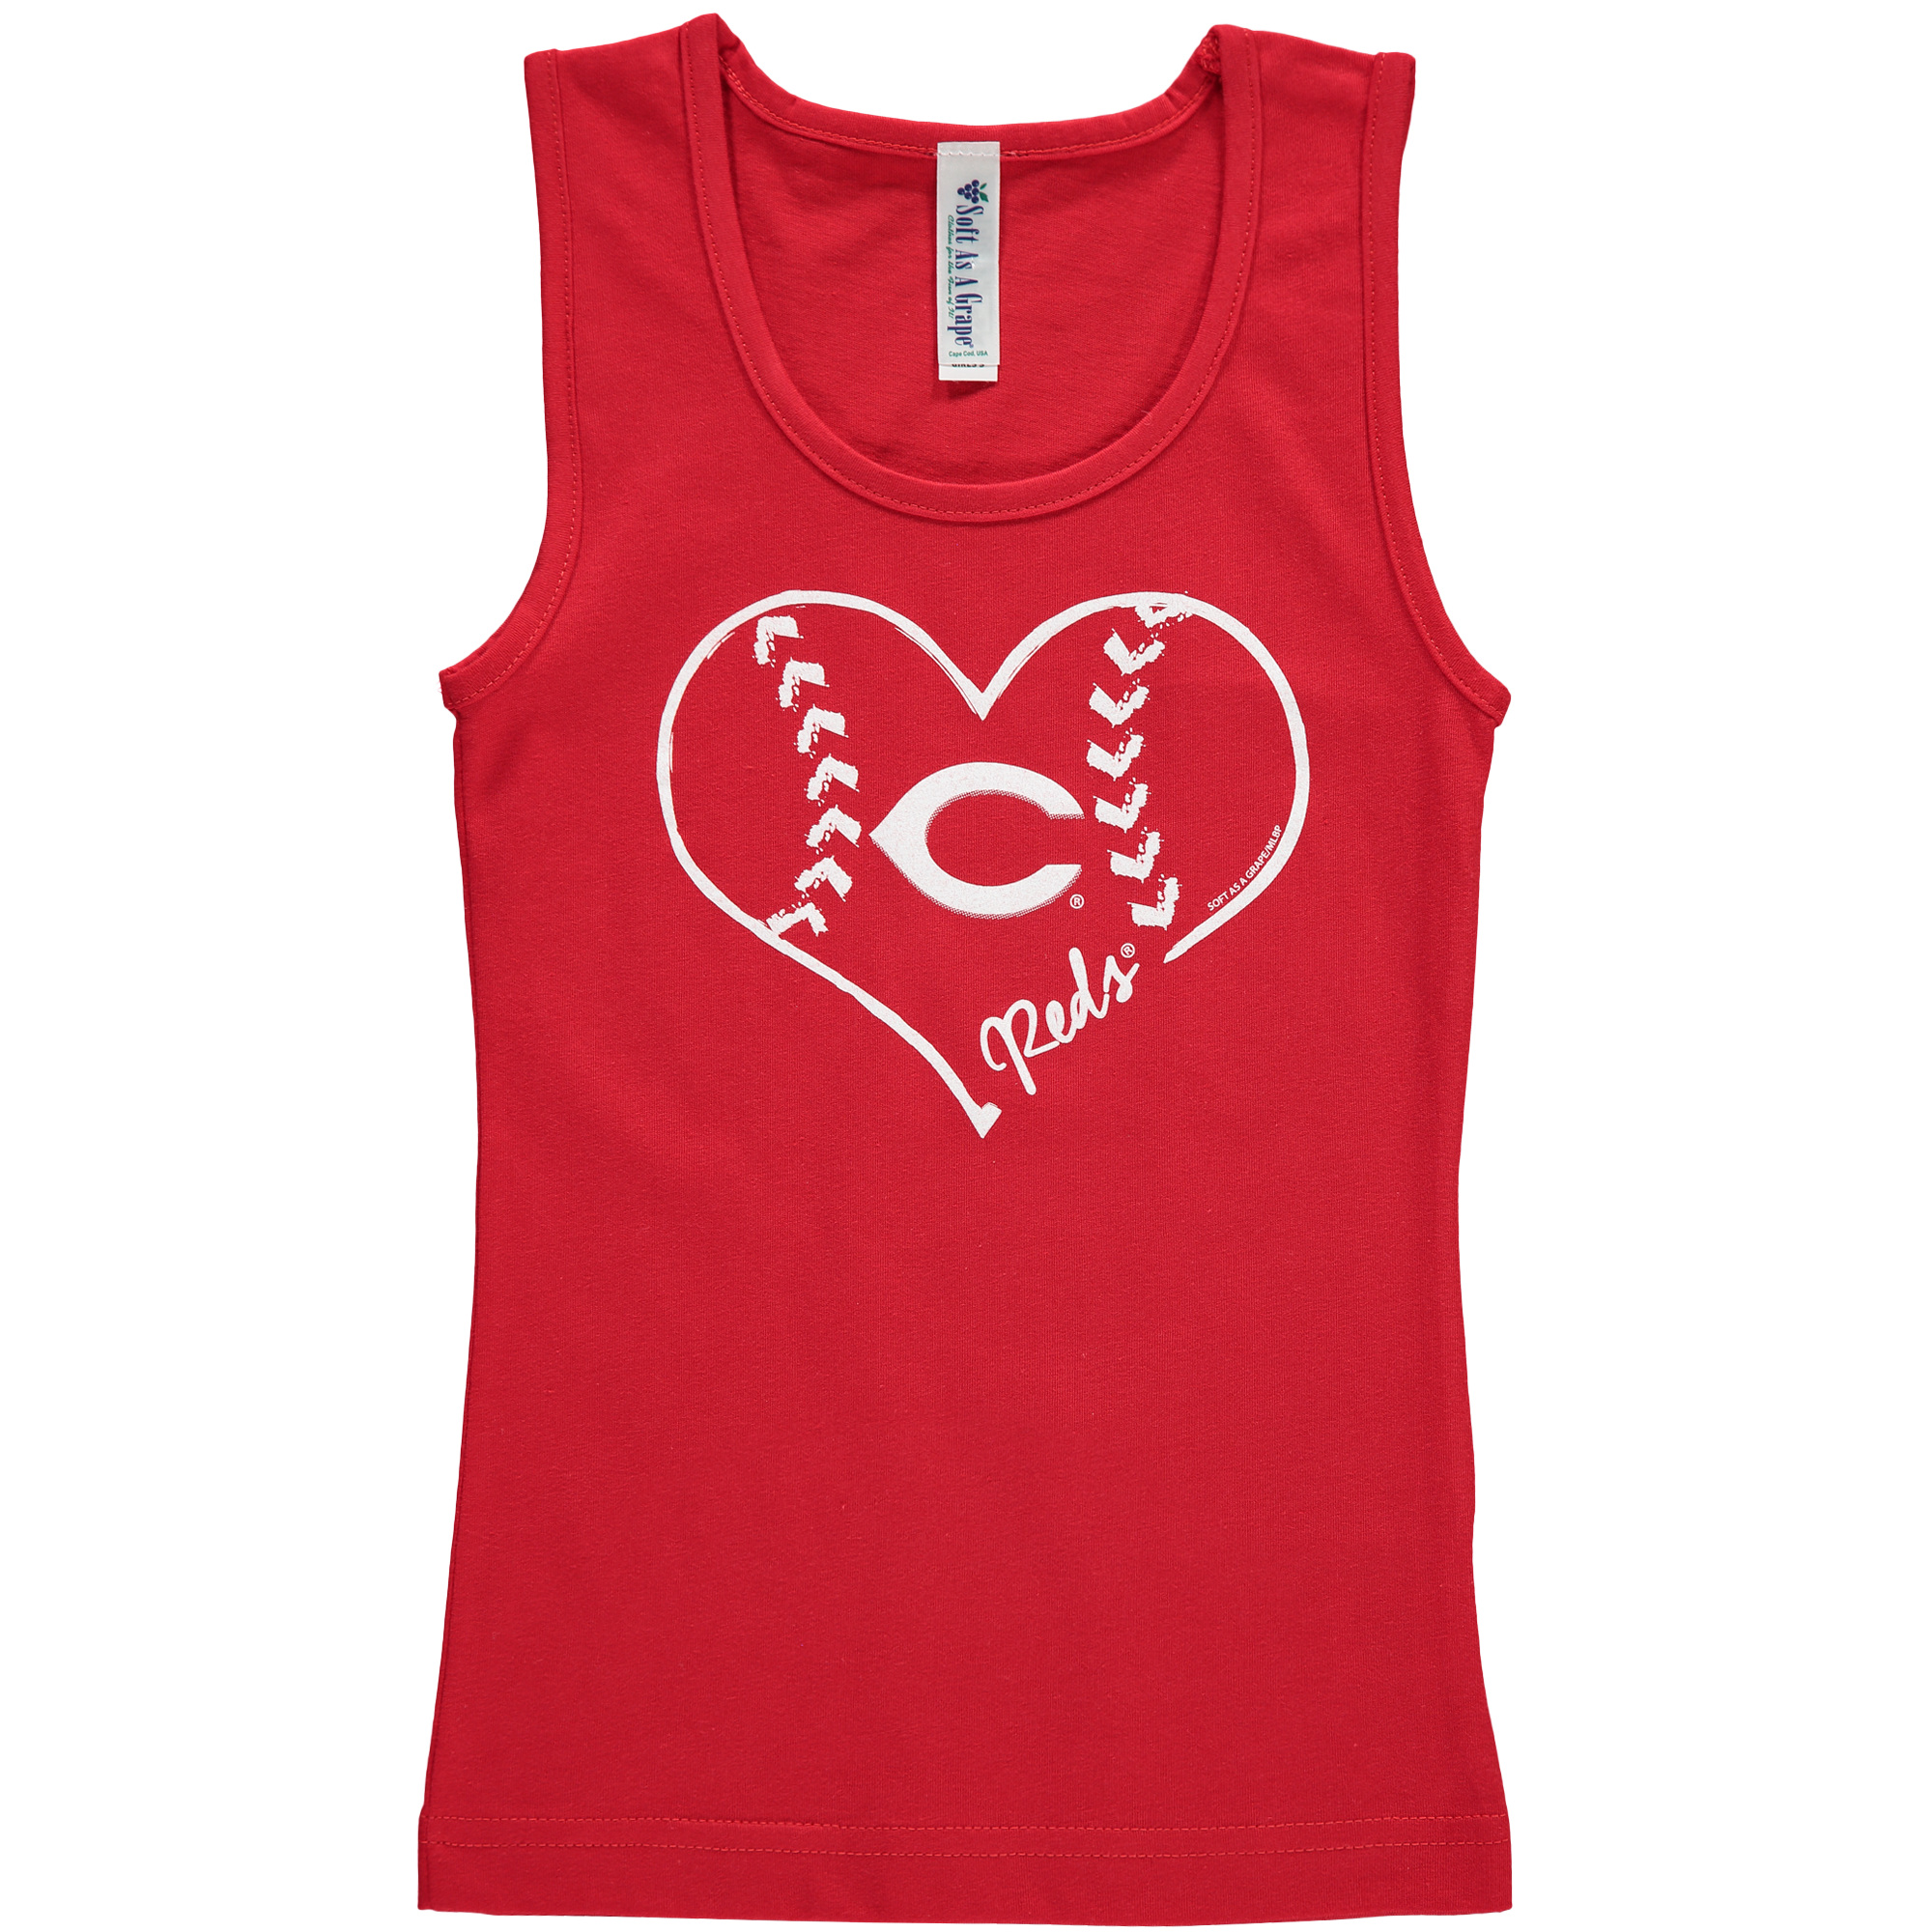 Cincinnati Reds Soft as a Grape Girls Youth Cotton Tank Top - Red